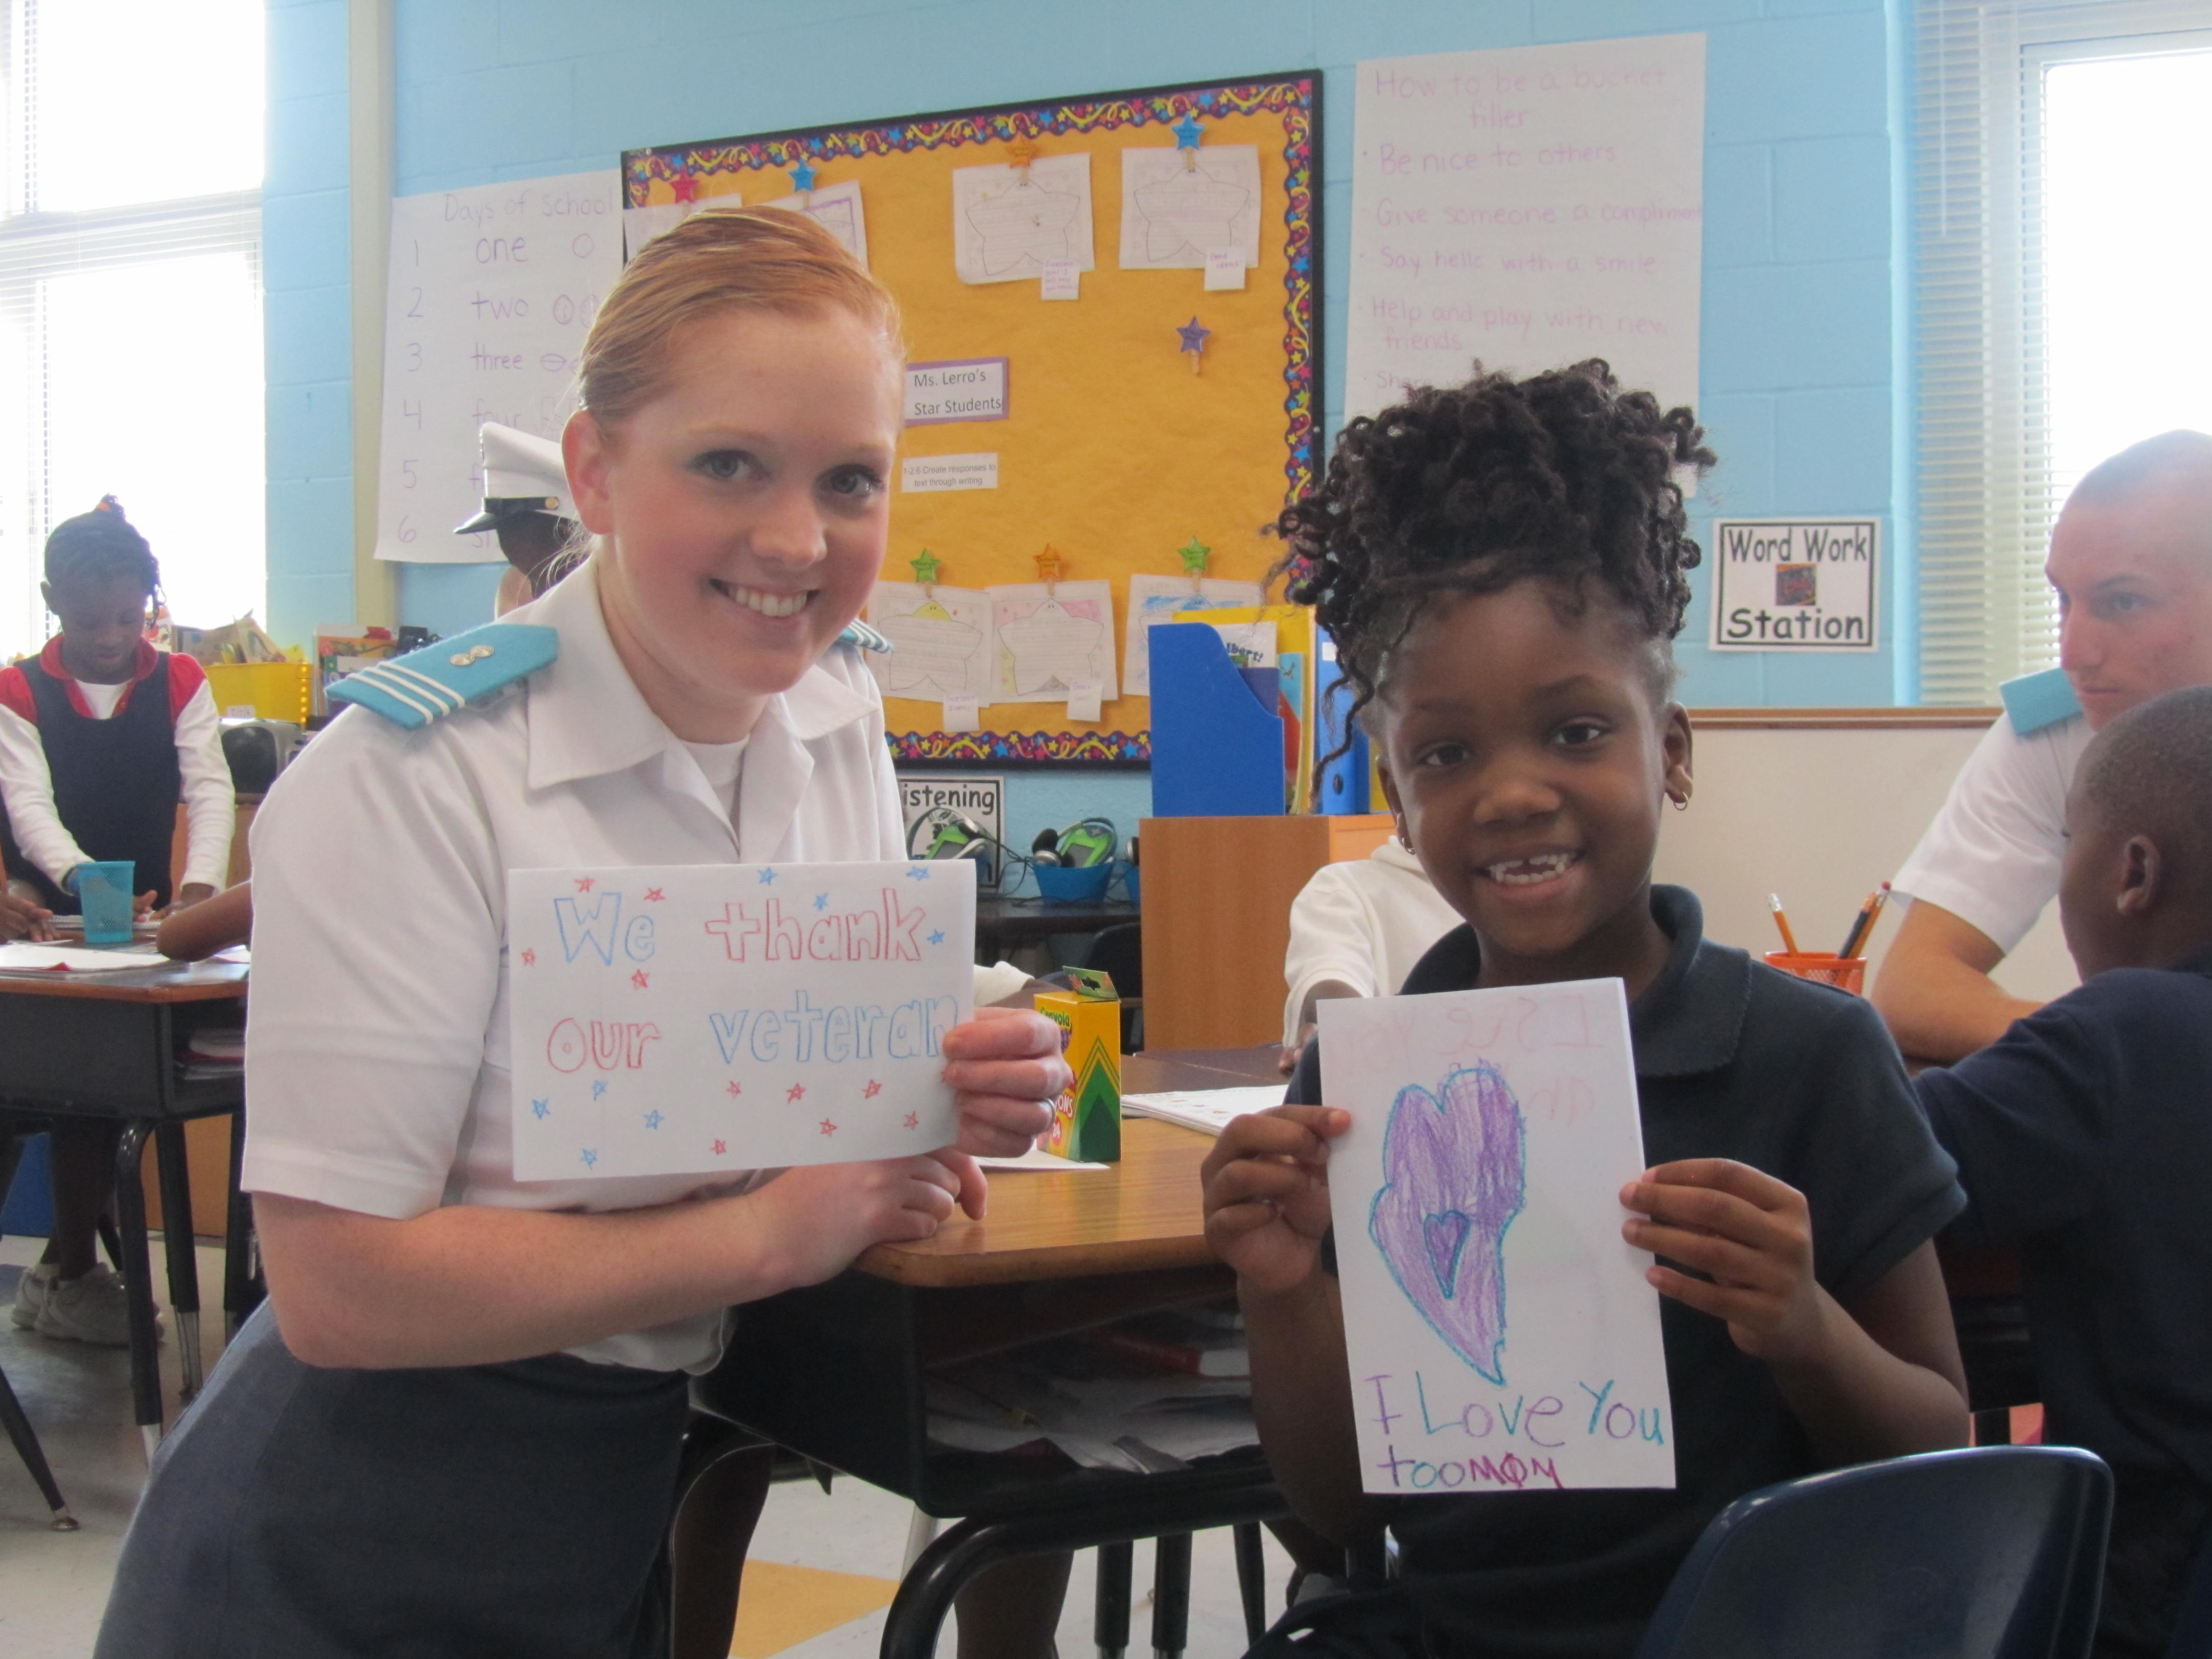 Citadel cadets visit schools on Leadership Day